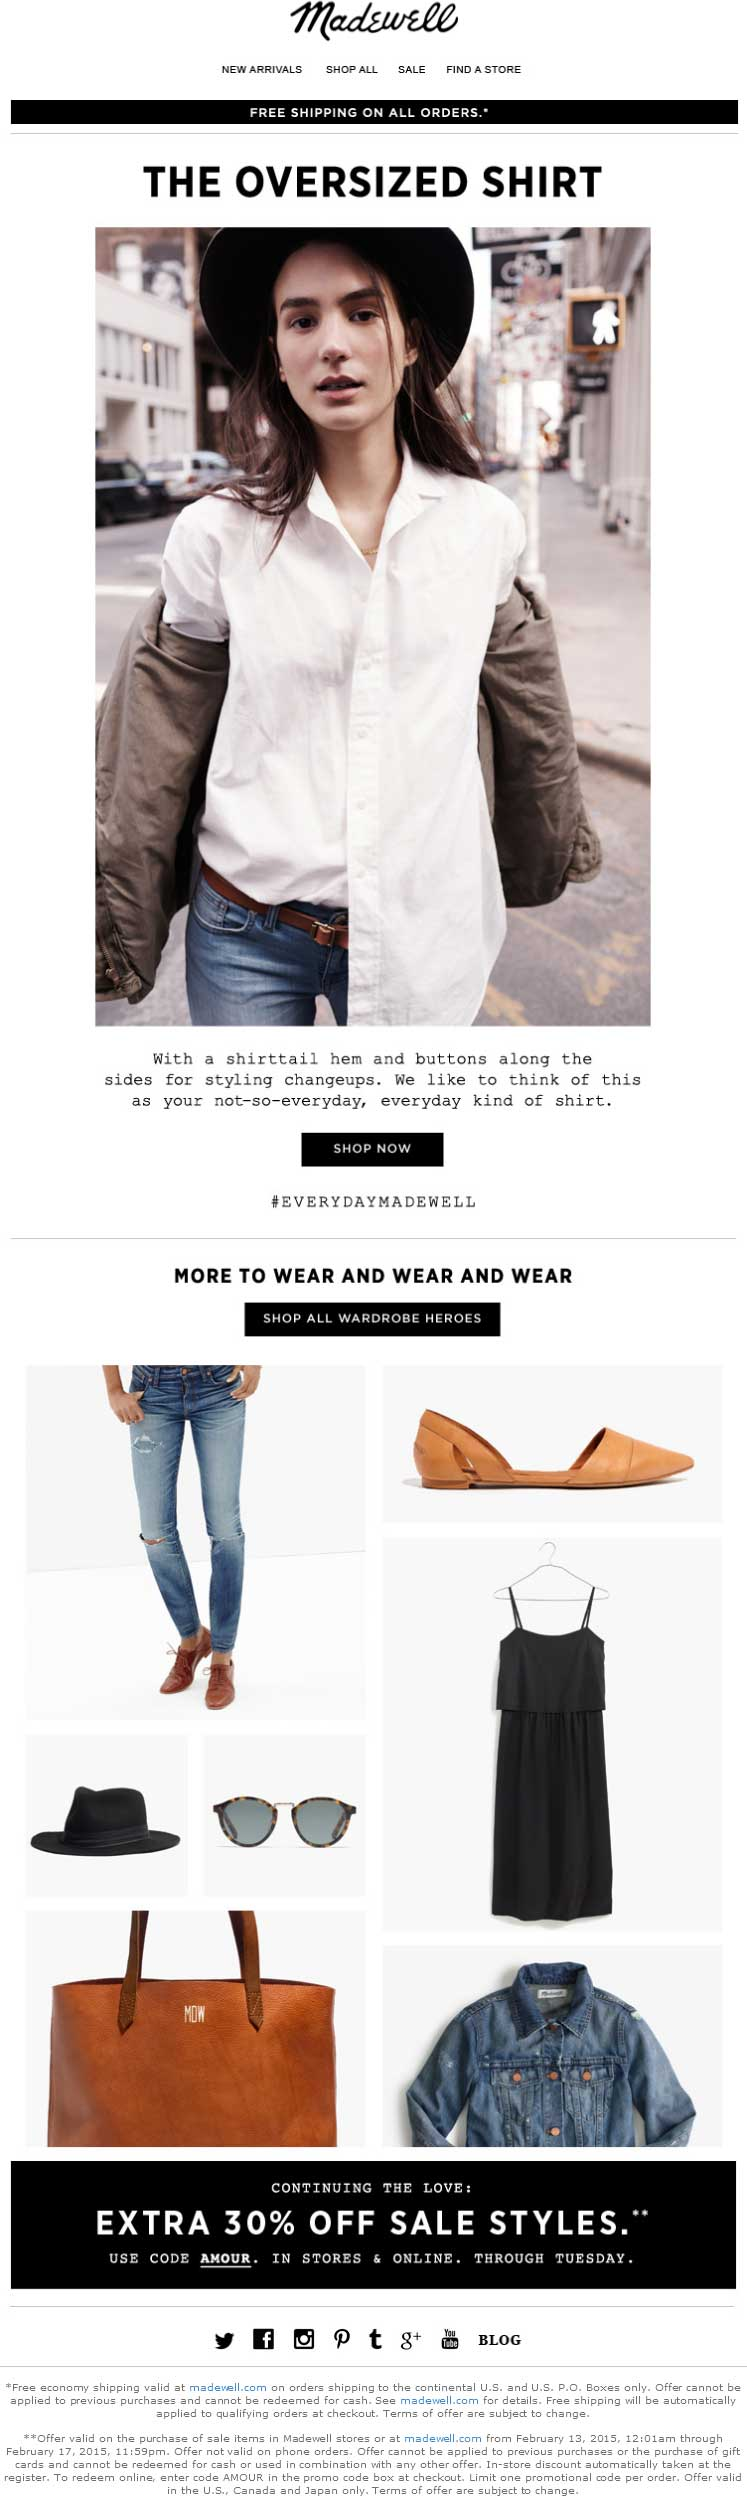 Madewell Coupon June 2017 Extra 30% off sale items at Madewell, or online via promo code AMOUR